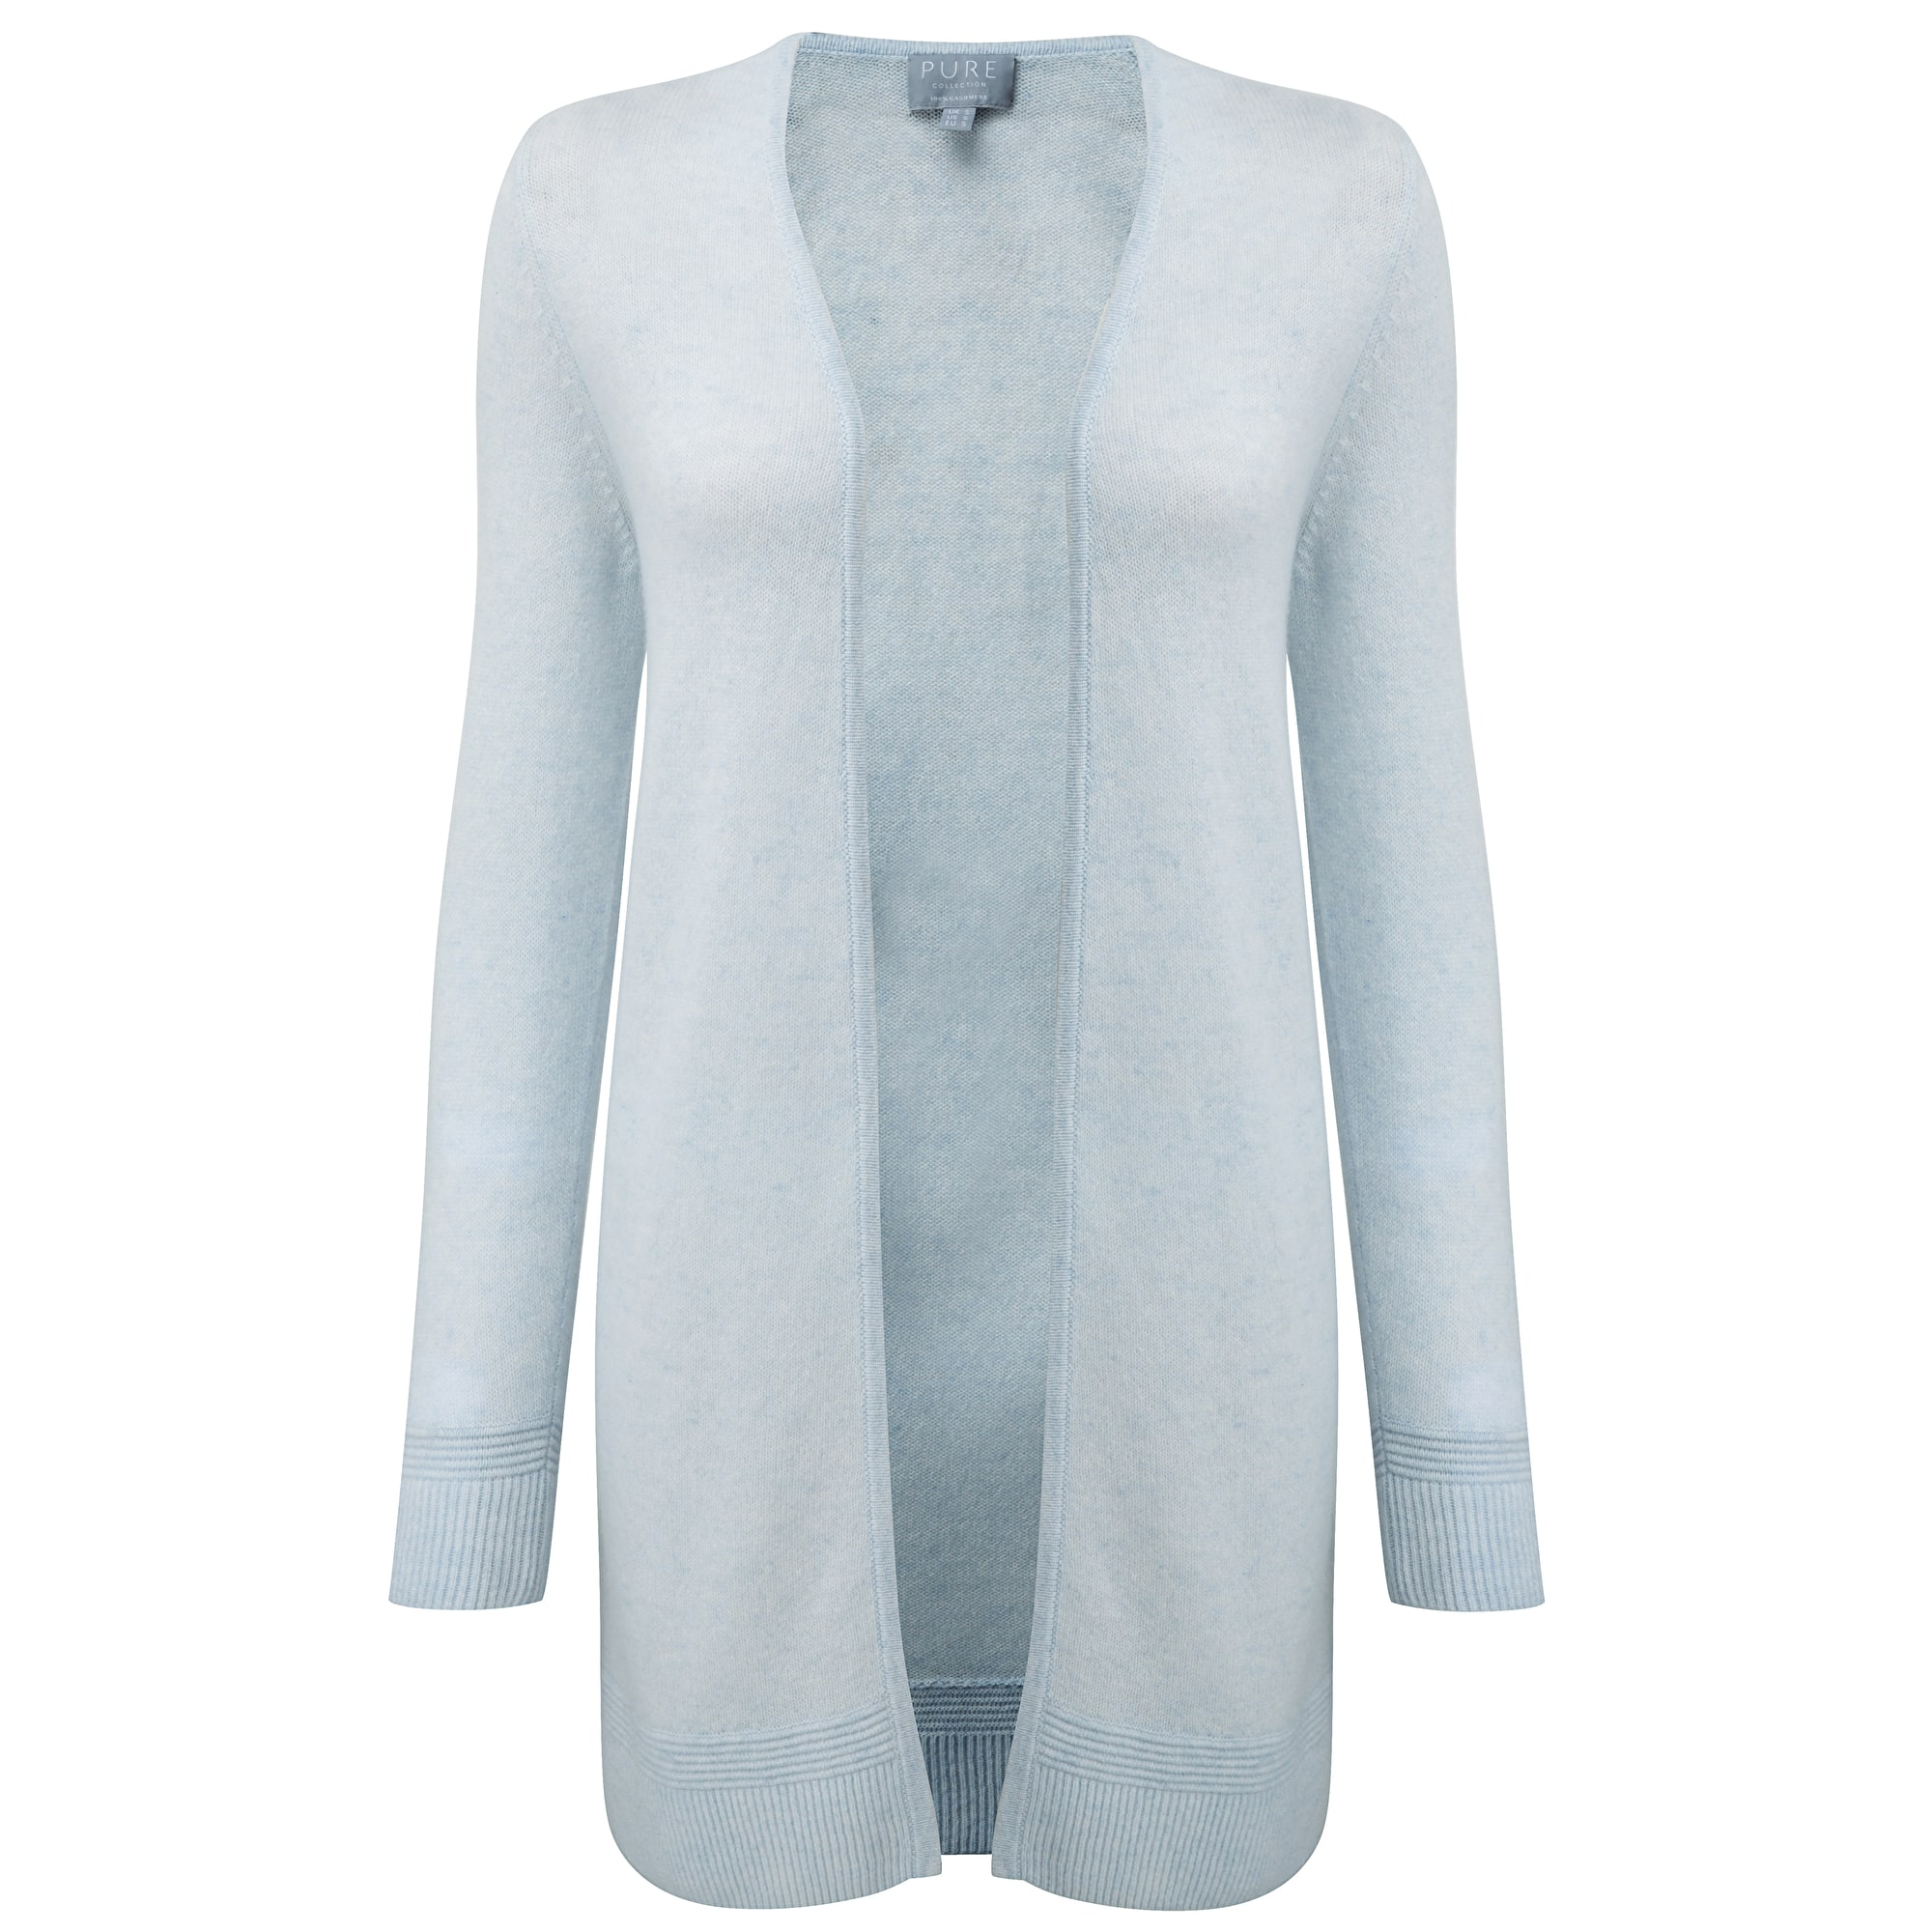 Cashmere_Sweater_frost blue